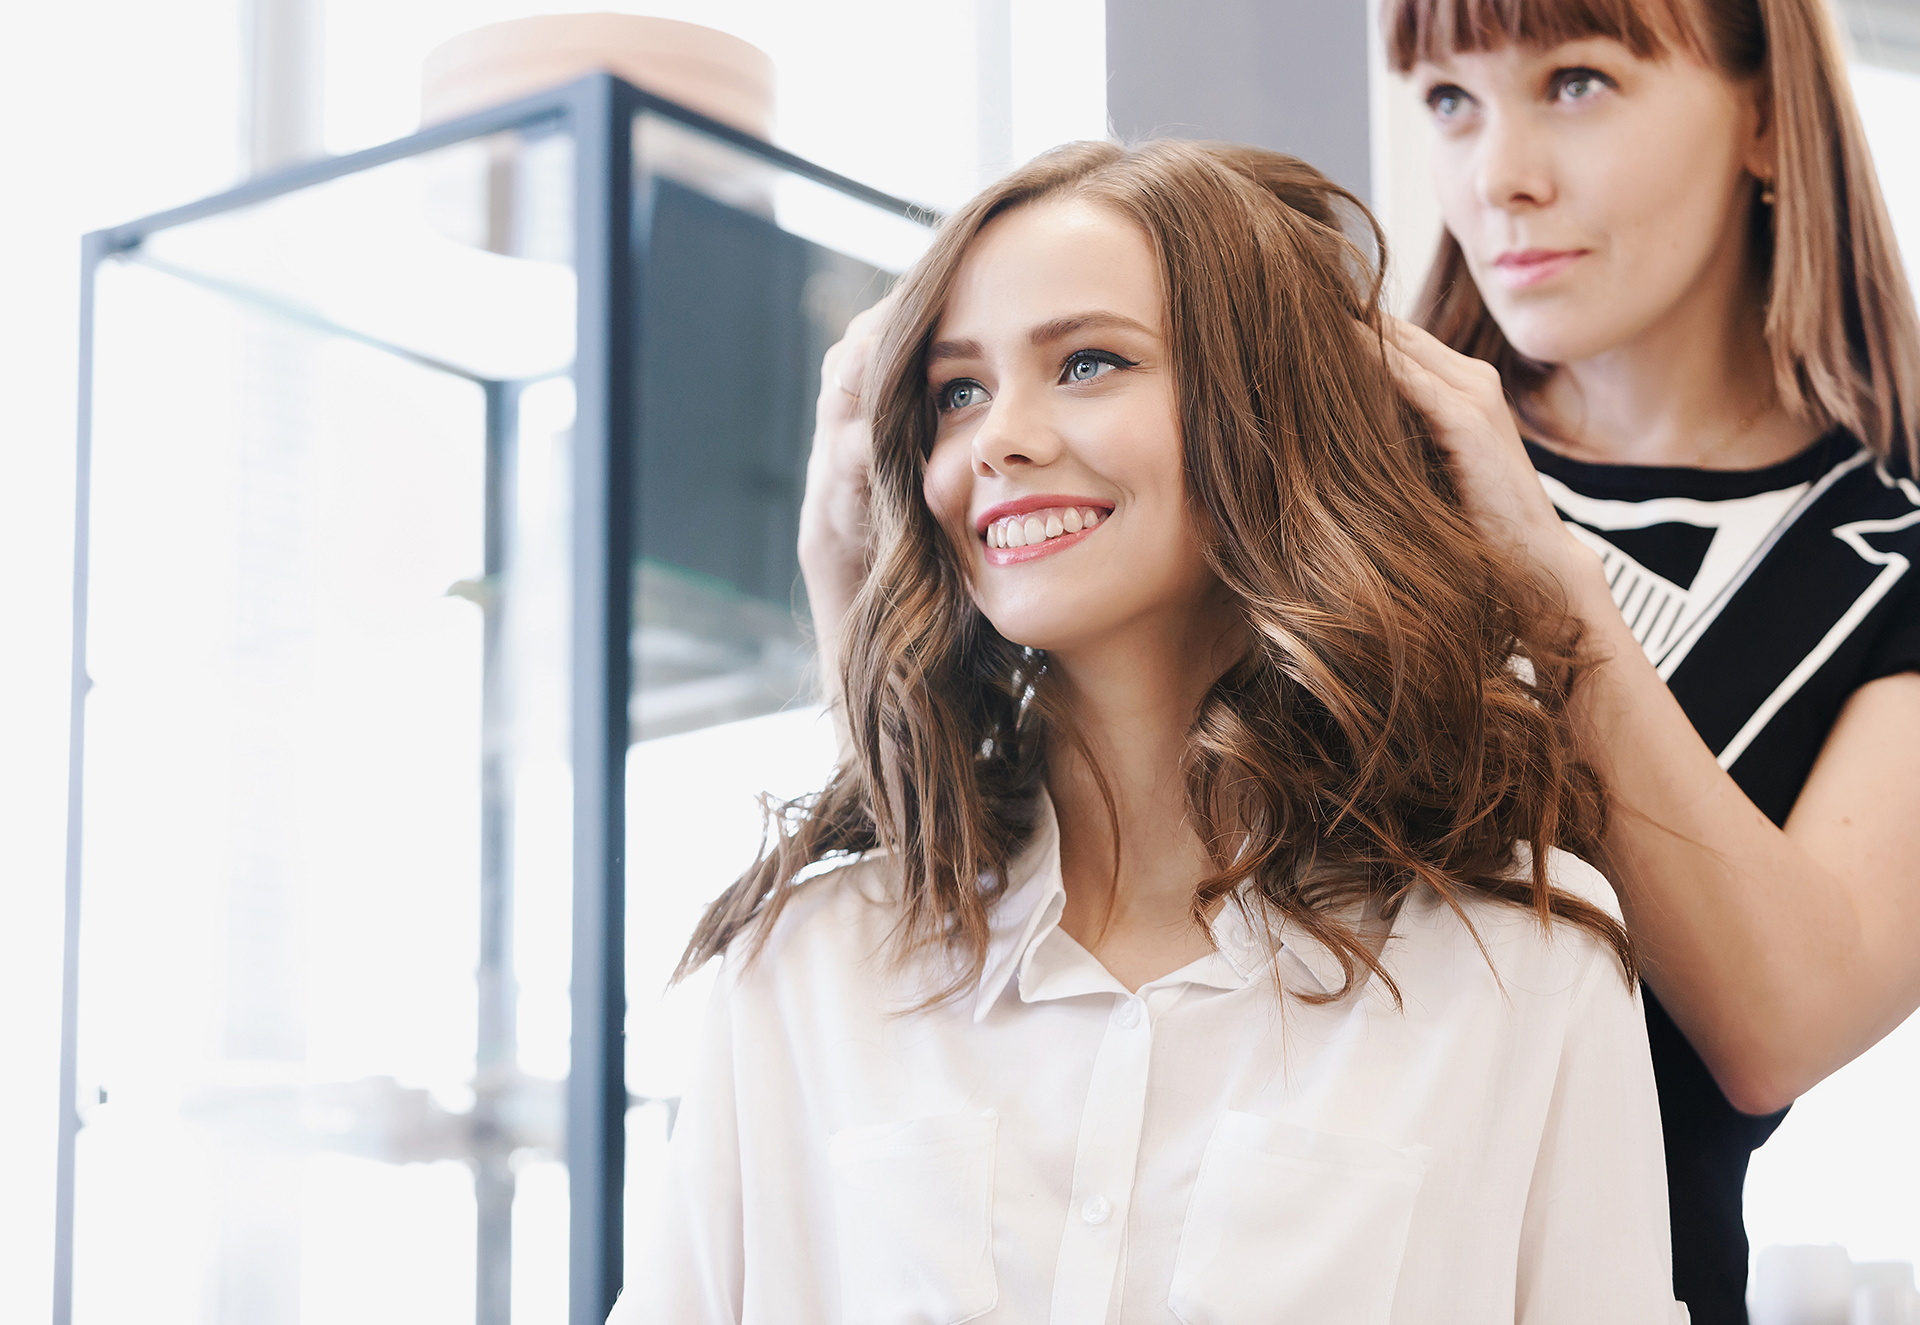 How to Become a Cosmetologist by Going to Beauty School